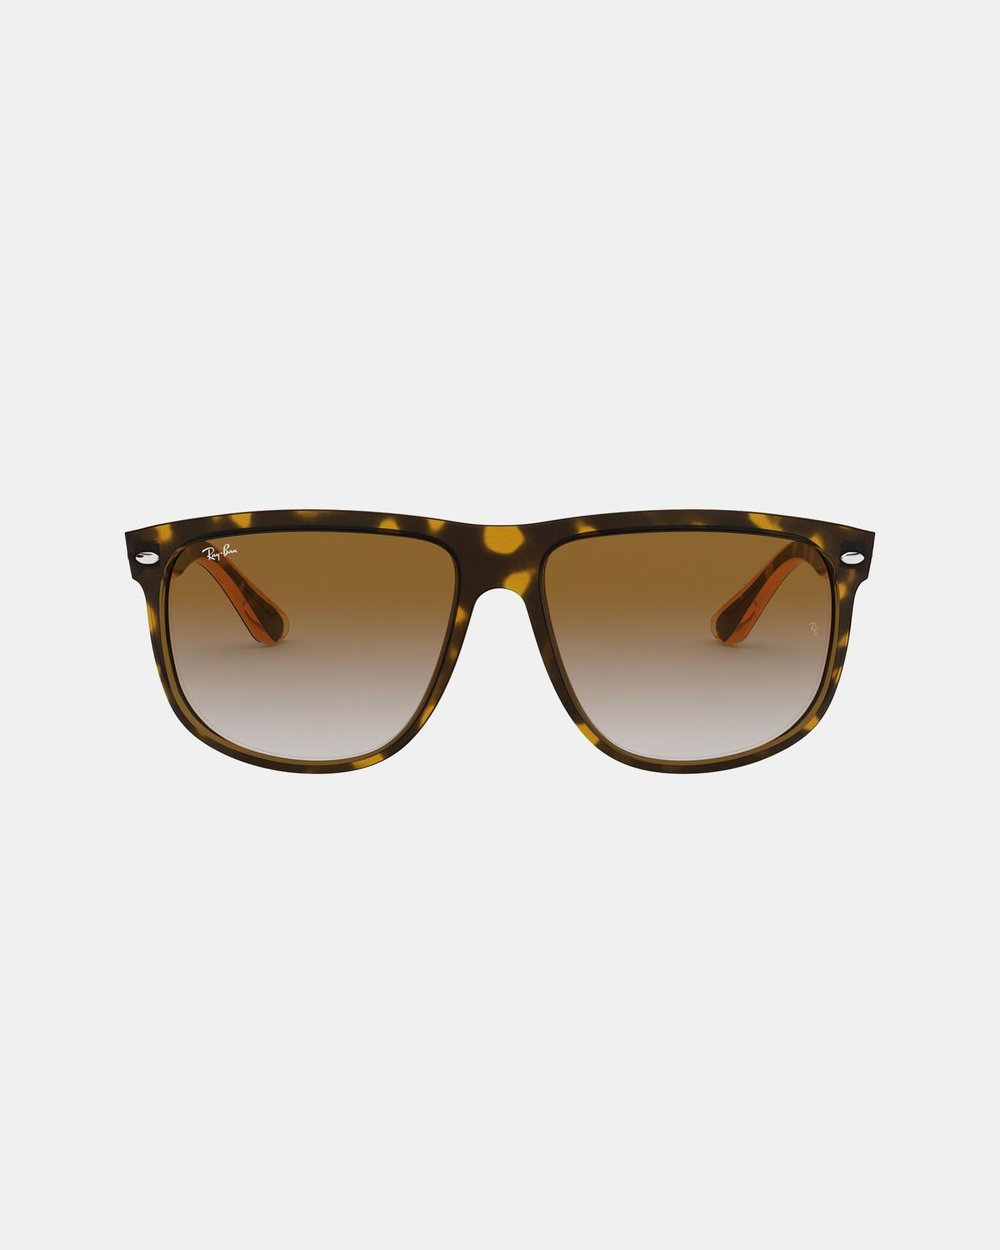 c0545b87b1 RB4147 by Ray-Ban Online